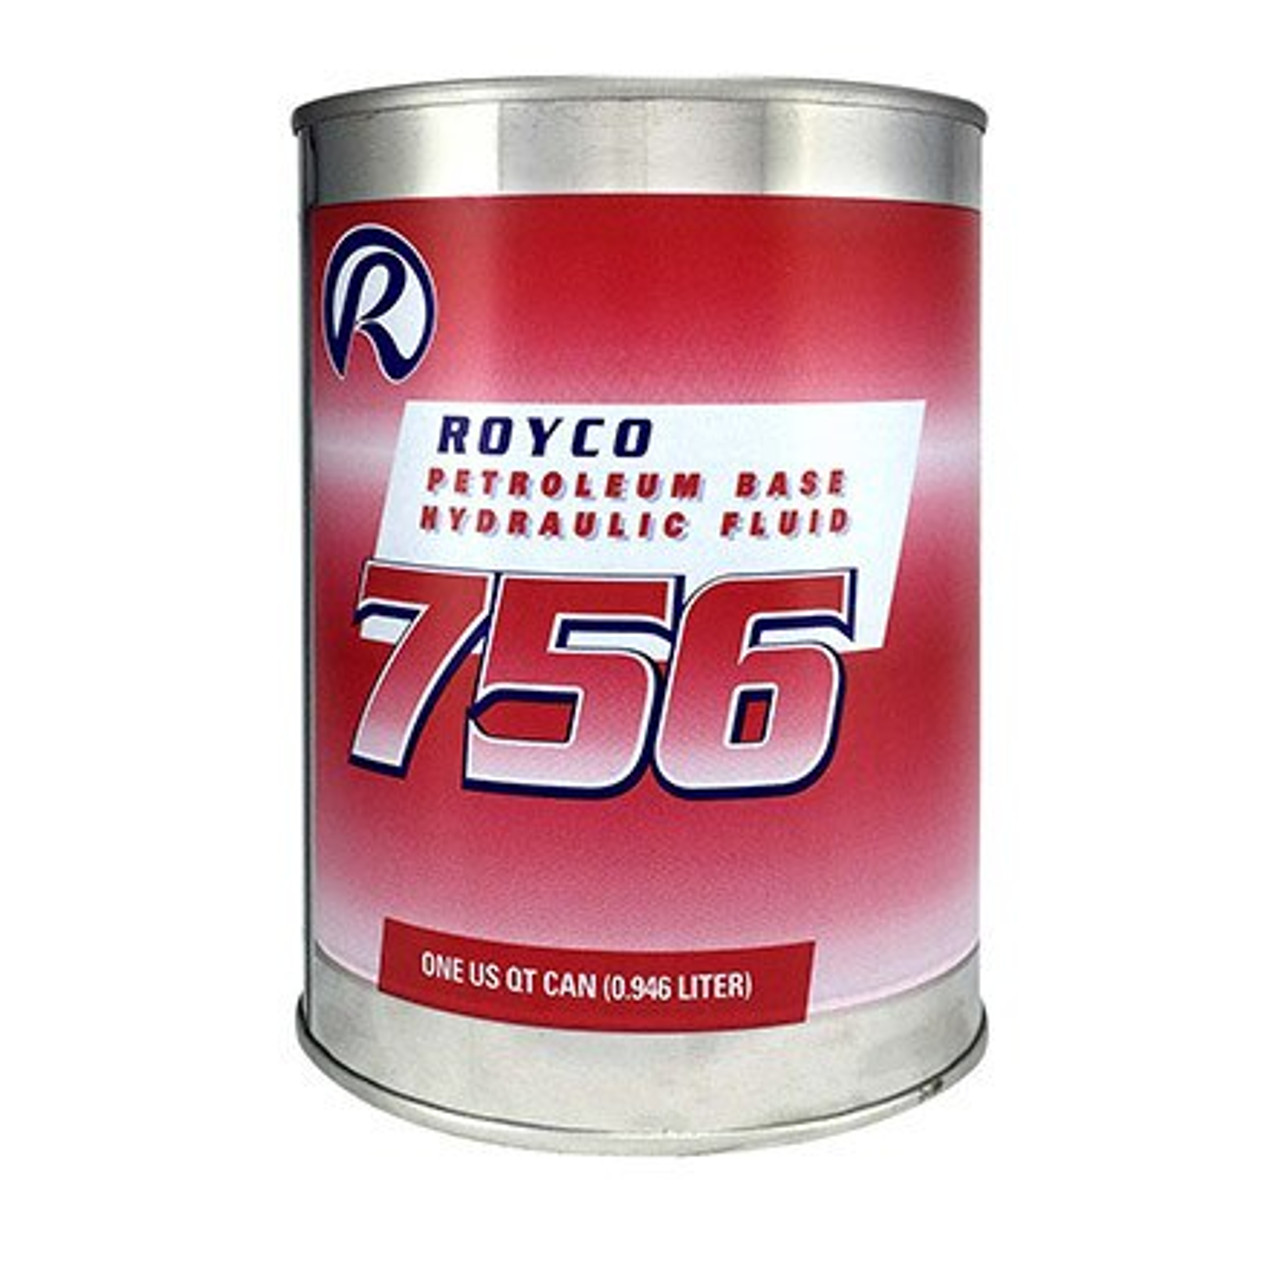 ROYCO® 756 Red MIL-PRF-5606H Amend. 3 Spec Mineral Oil Based Aircraft Hydraulic Fluid - Gallon Can - Part#: 4055741by ROYCO® ROYCO 756 is a red-dyed, mineral oil based hydraulic fluid developed for the severe duty demands of aerospace and industrial service. ROYCO 756 contains additives that provide excellent low temperature fluidity as well as exceptional anti-wear, oxidation / corrosion inhibition, and shear stability. In addition, metal deactivators and foam inhibitors are provided in this high viscosity index fluid to enhance performance in many general purpose hydraulic applications.  Approvals/References/Specs:  US Military Specification: MIL-H-5606A US Military Specification: MIL-H-5606G US Military Specification: MIL-O-5606 US Military Specification: MIL-PRF-5606H US Military Specification: AN-O-336 US Military Specification: AN-VV-O-336 US Military Specification: AAF-3580 Alternate PN#s: ROYCO 756